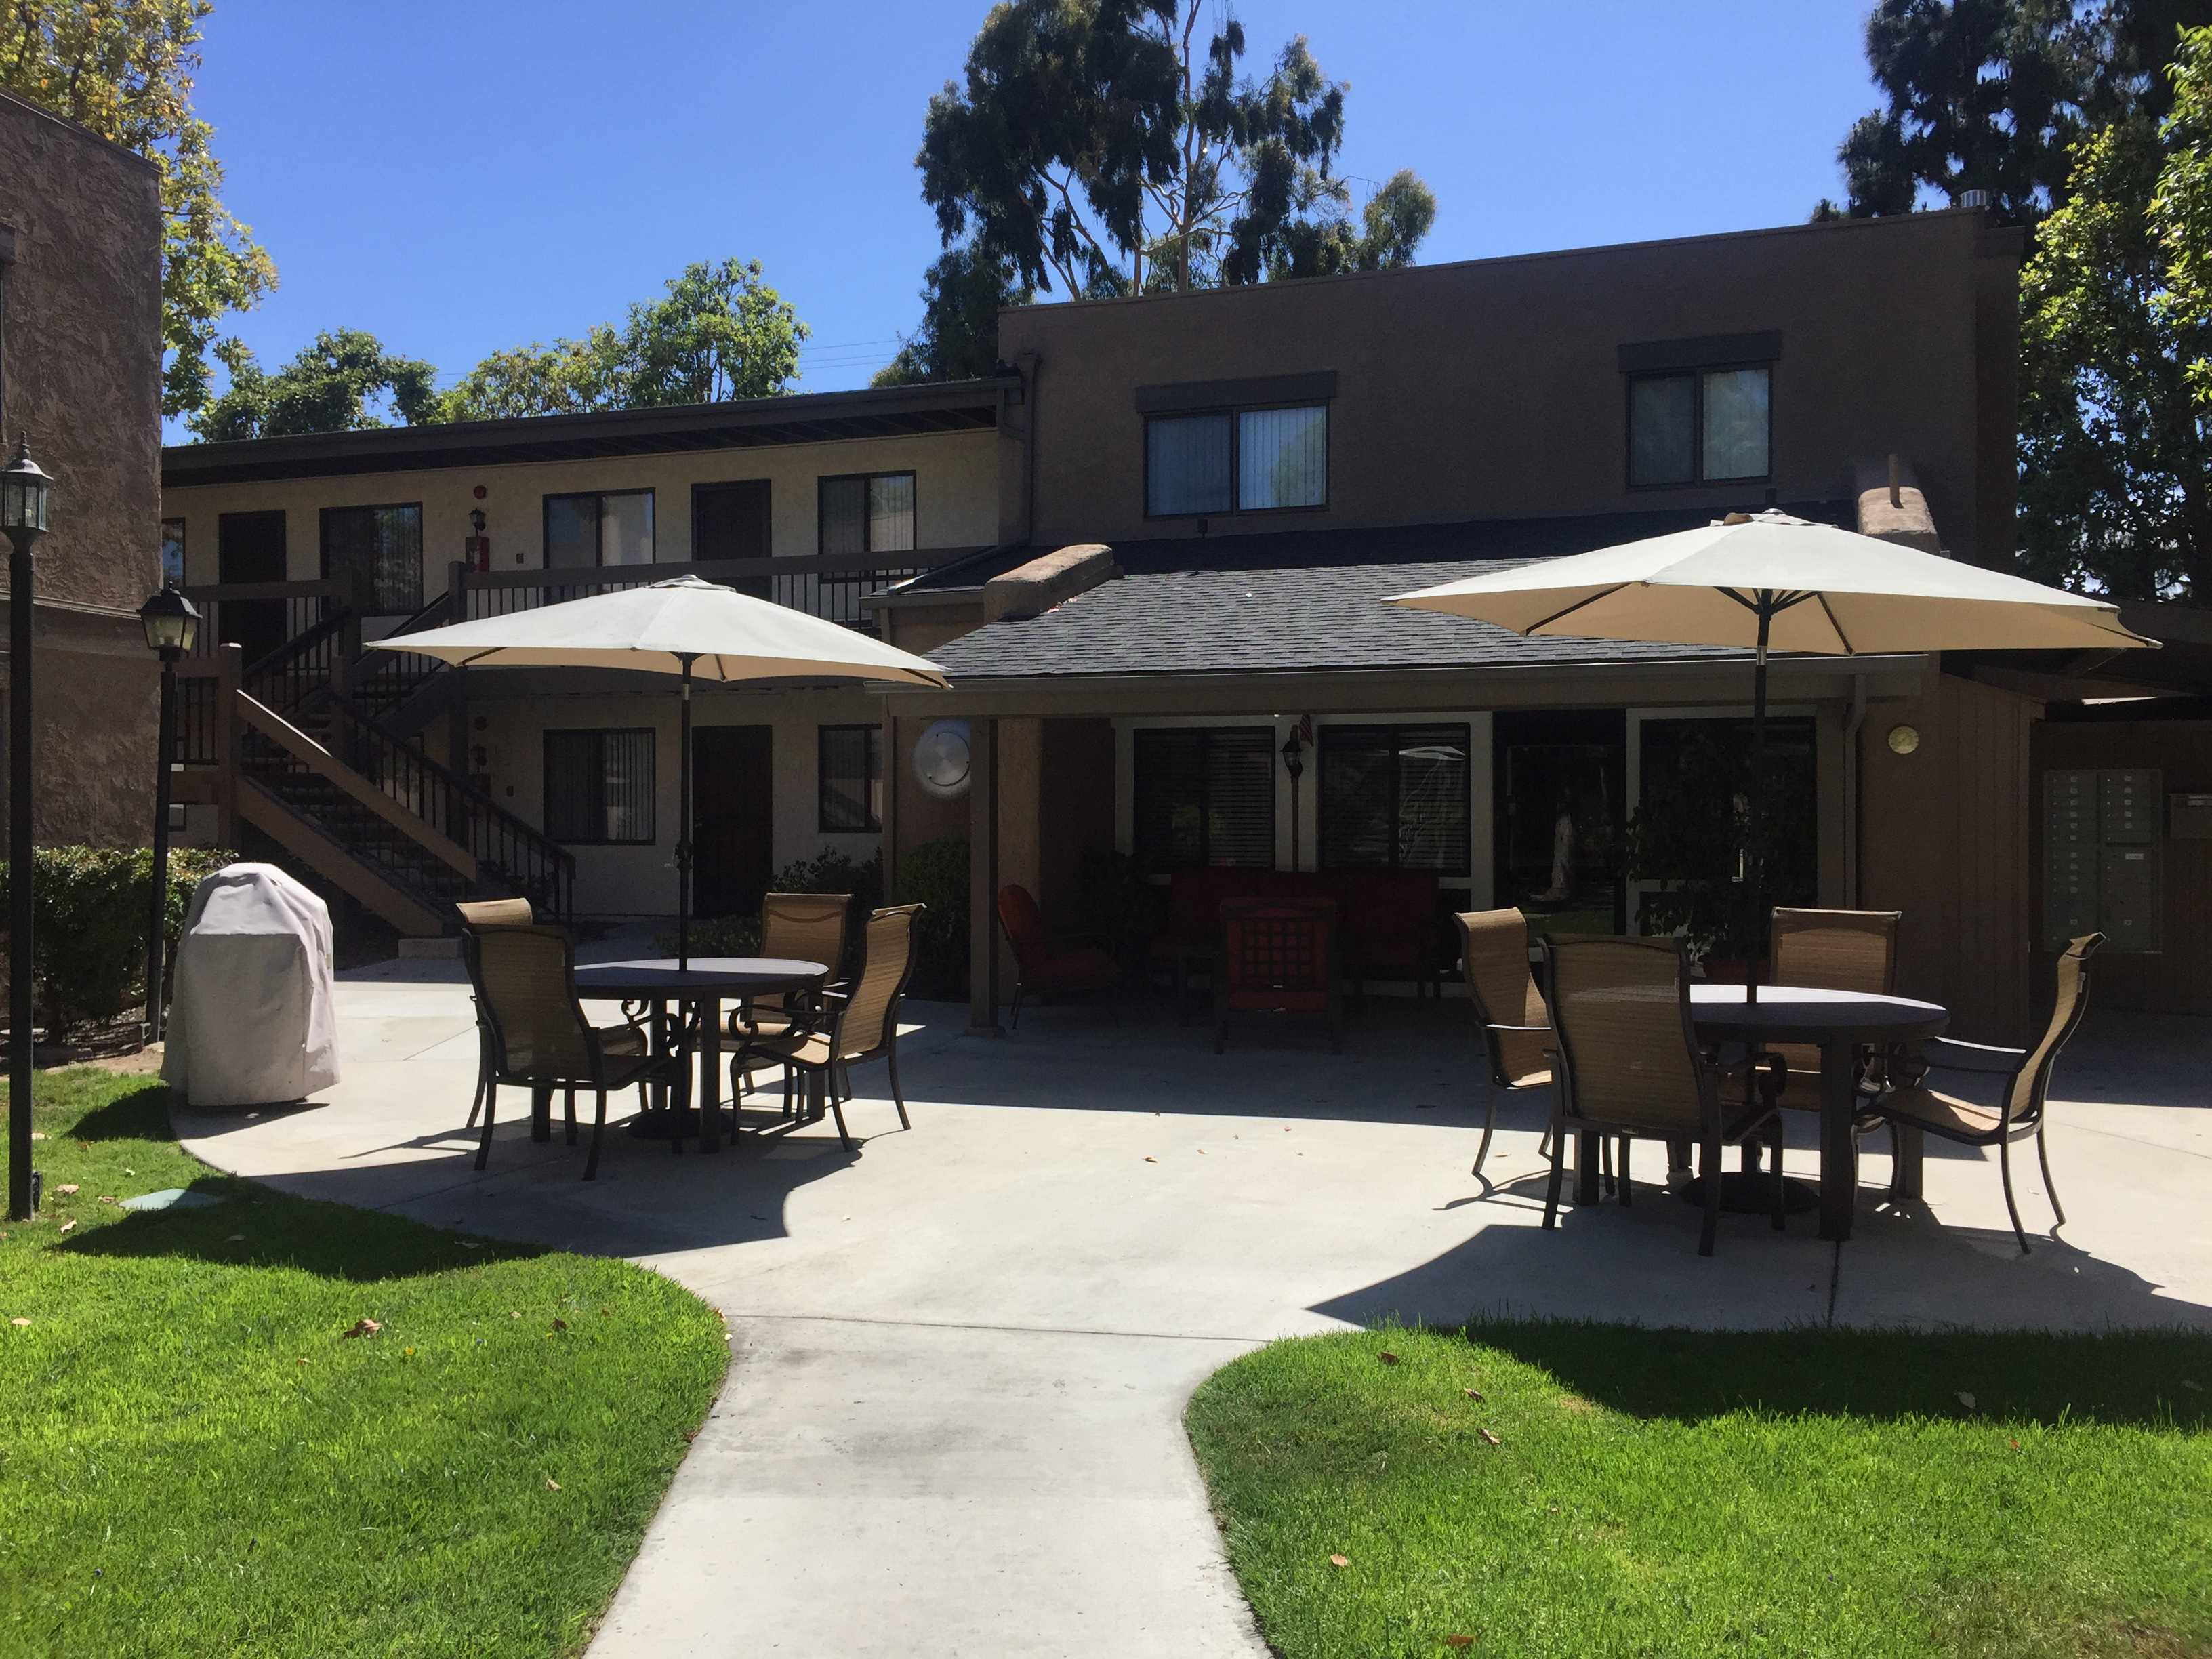 Image of Heritage Park Apartments in Anaheim, California